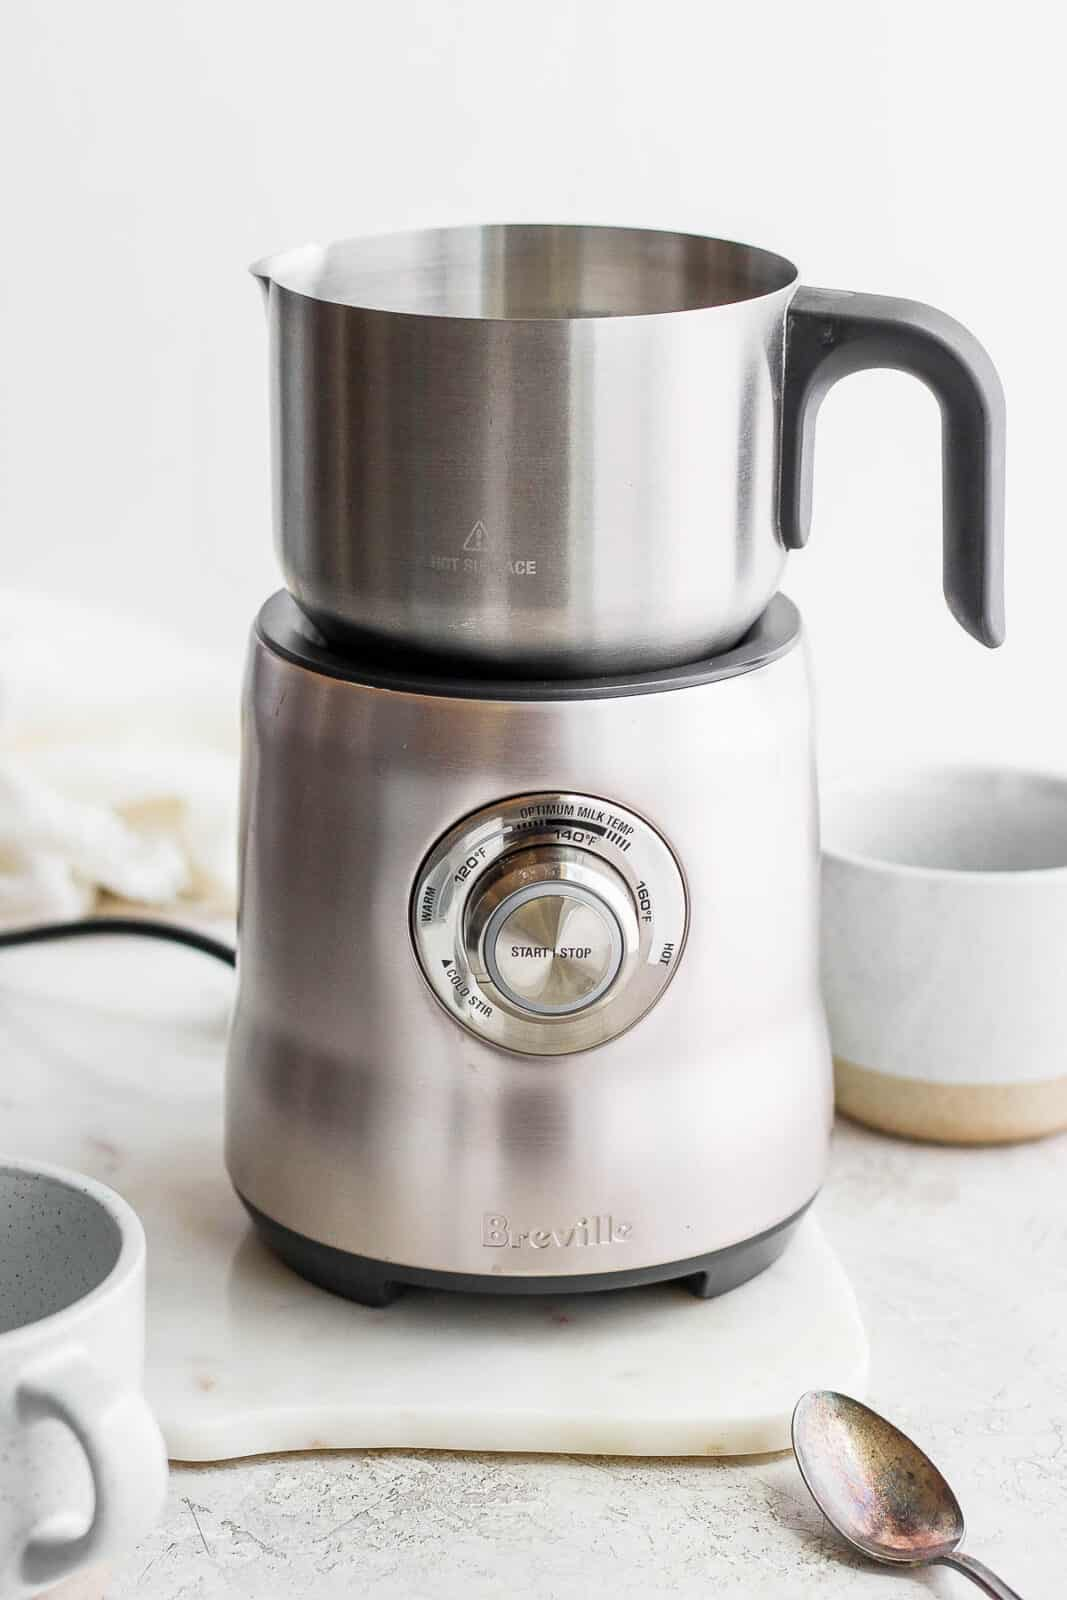 Breville frother and a few cups.